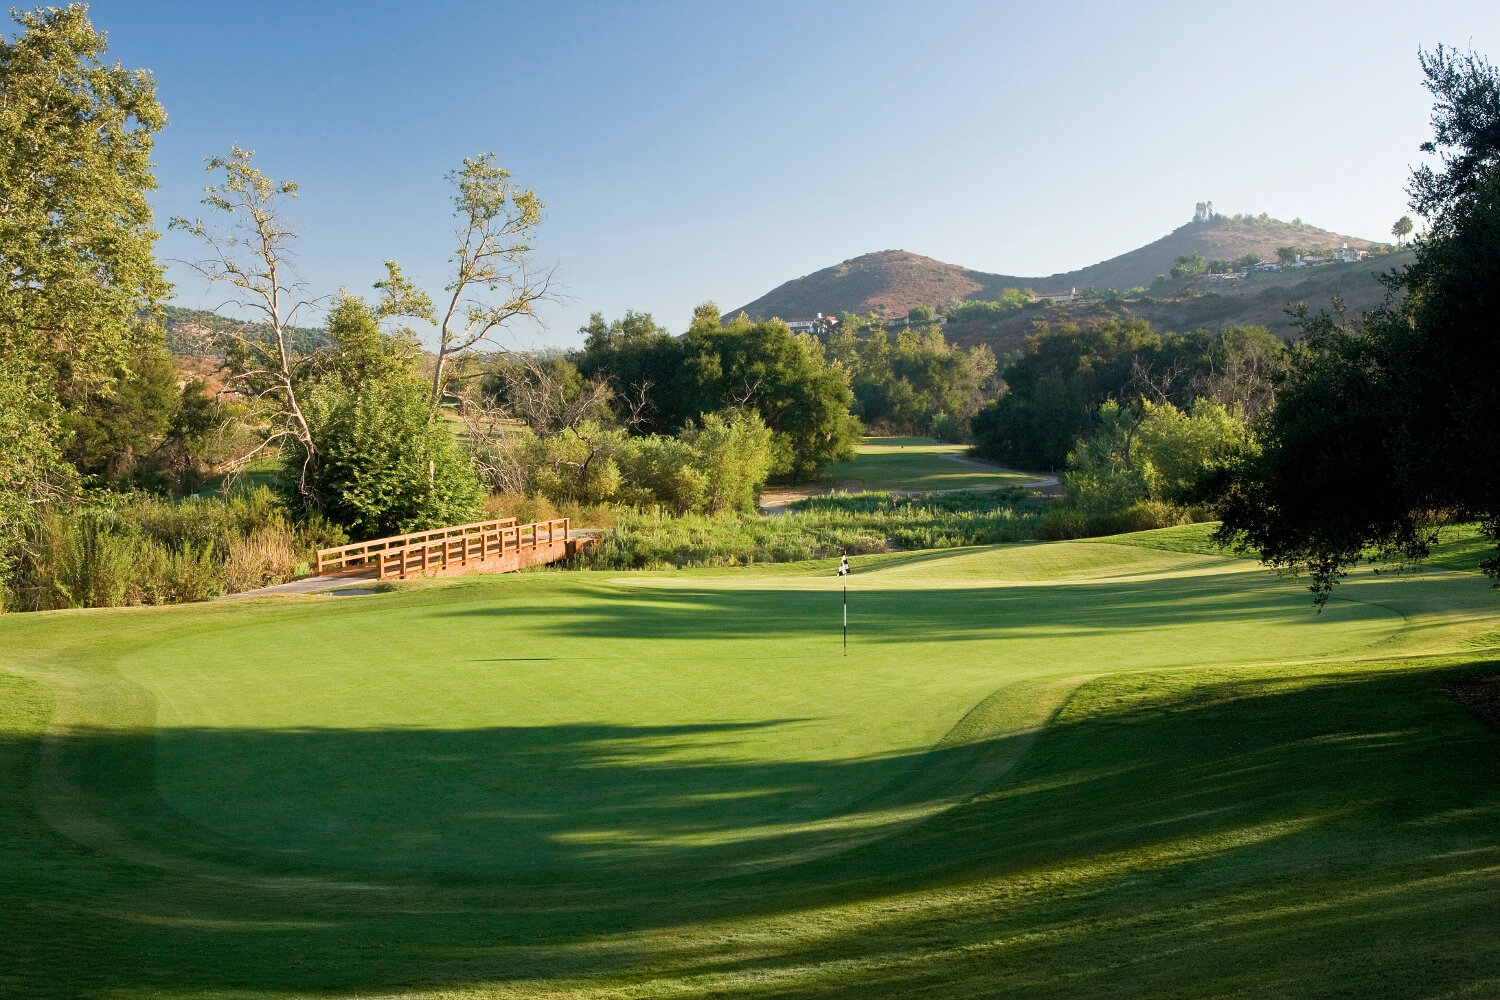 Maderas Golf Club - Poway, California